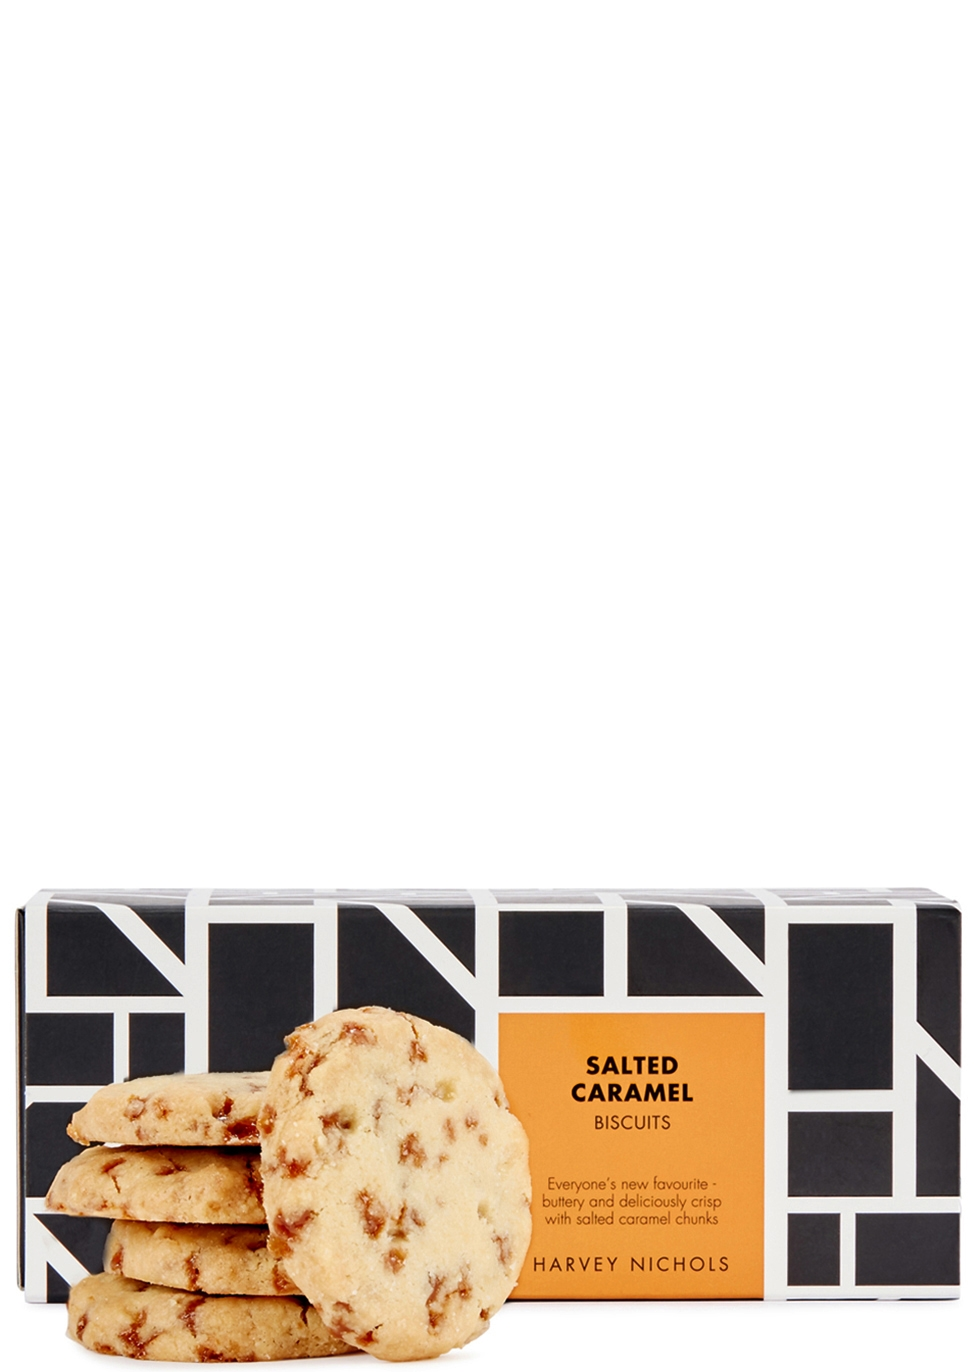 harvey nichols salted caramel biscuits 200g rh harveynichols com